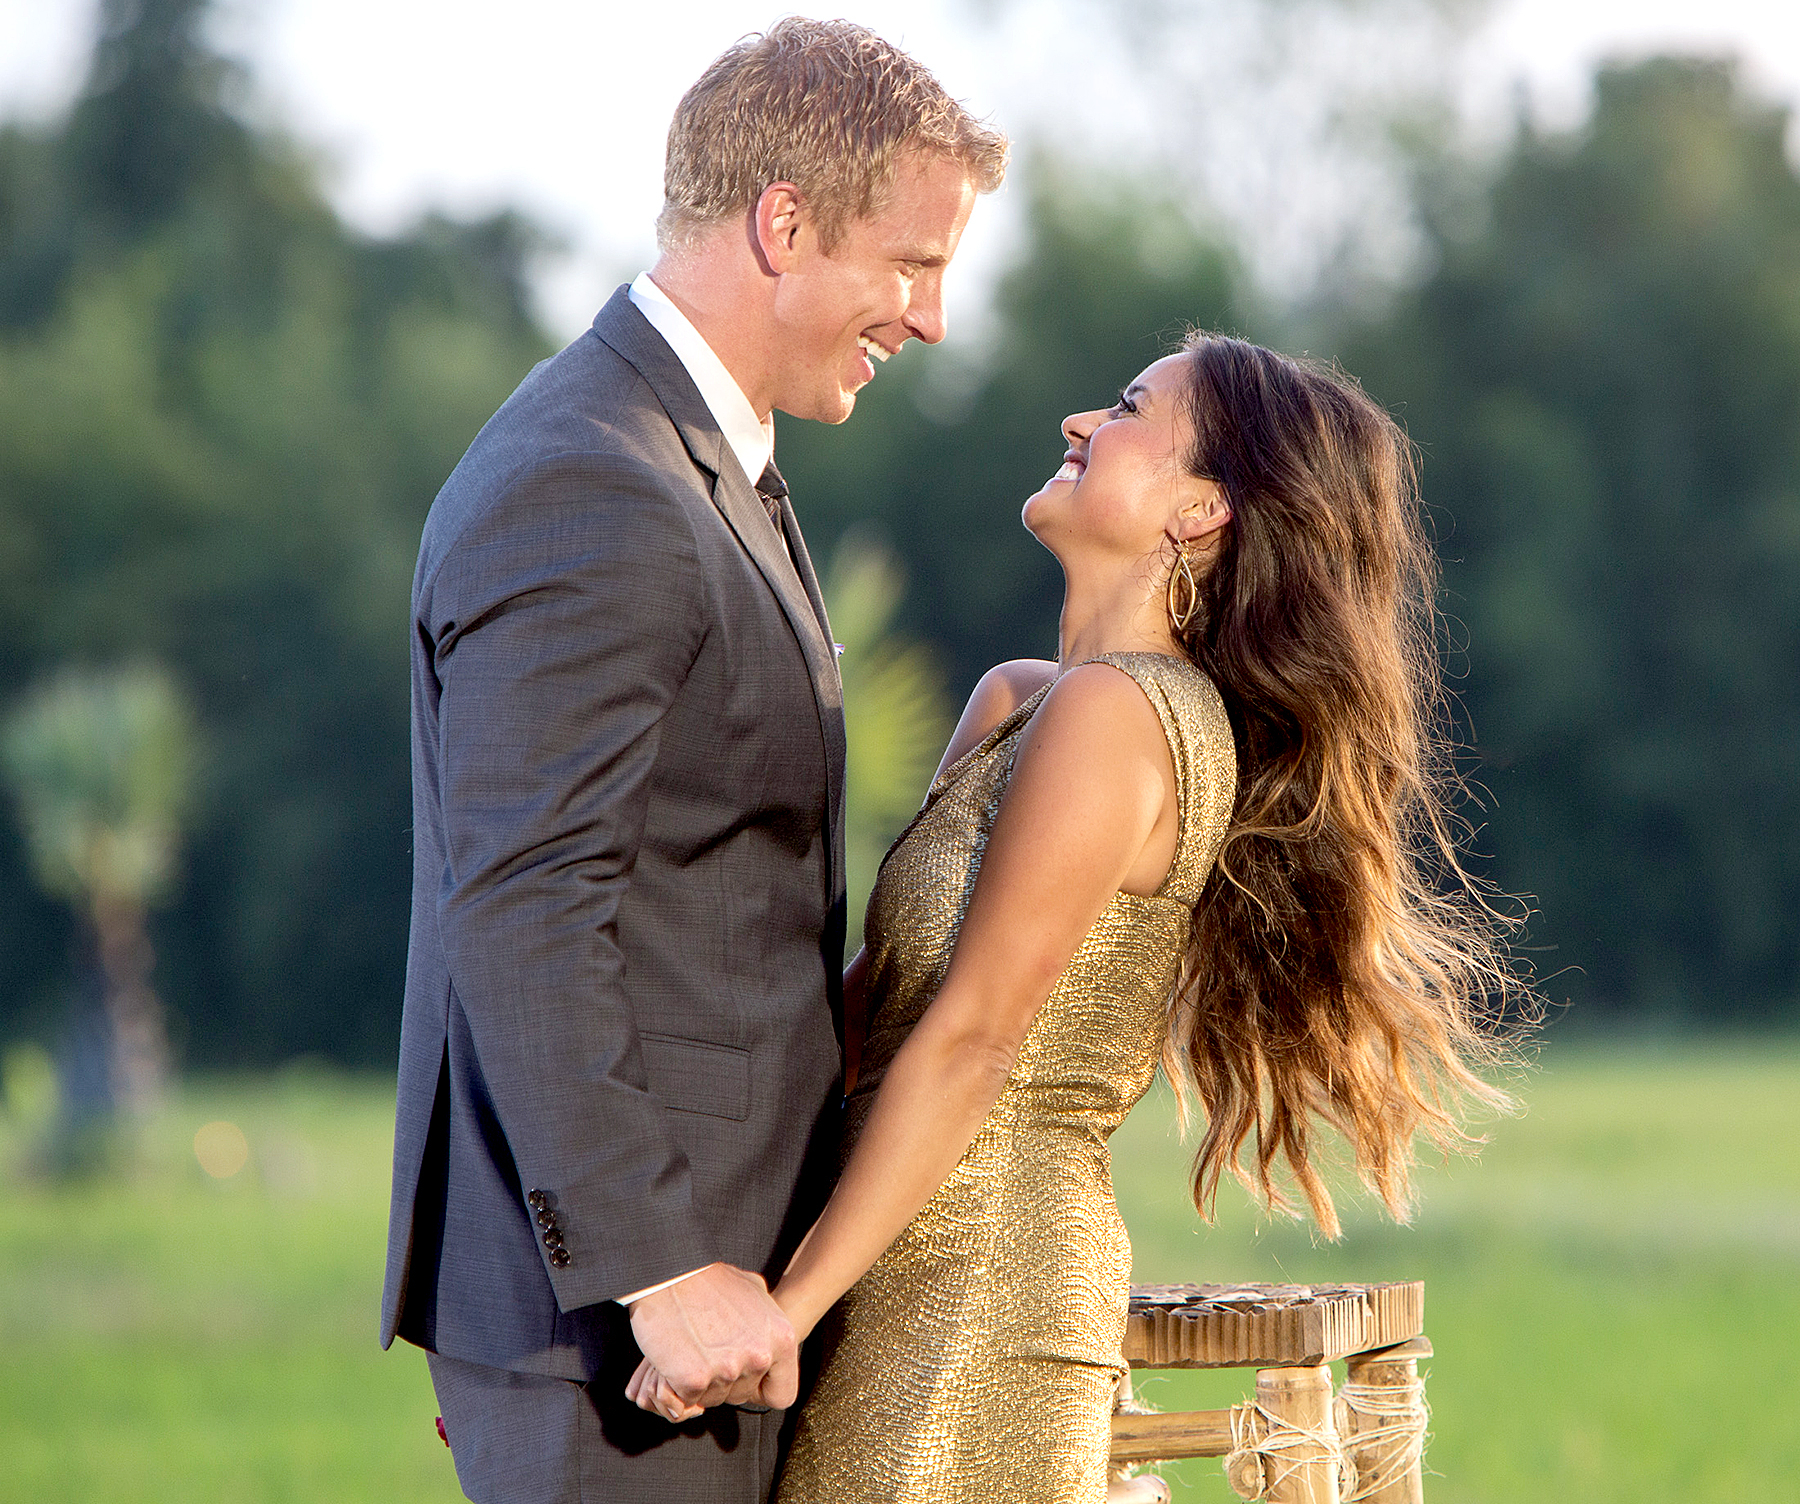 Sean and Catherine on The Bachelor.